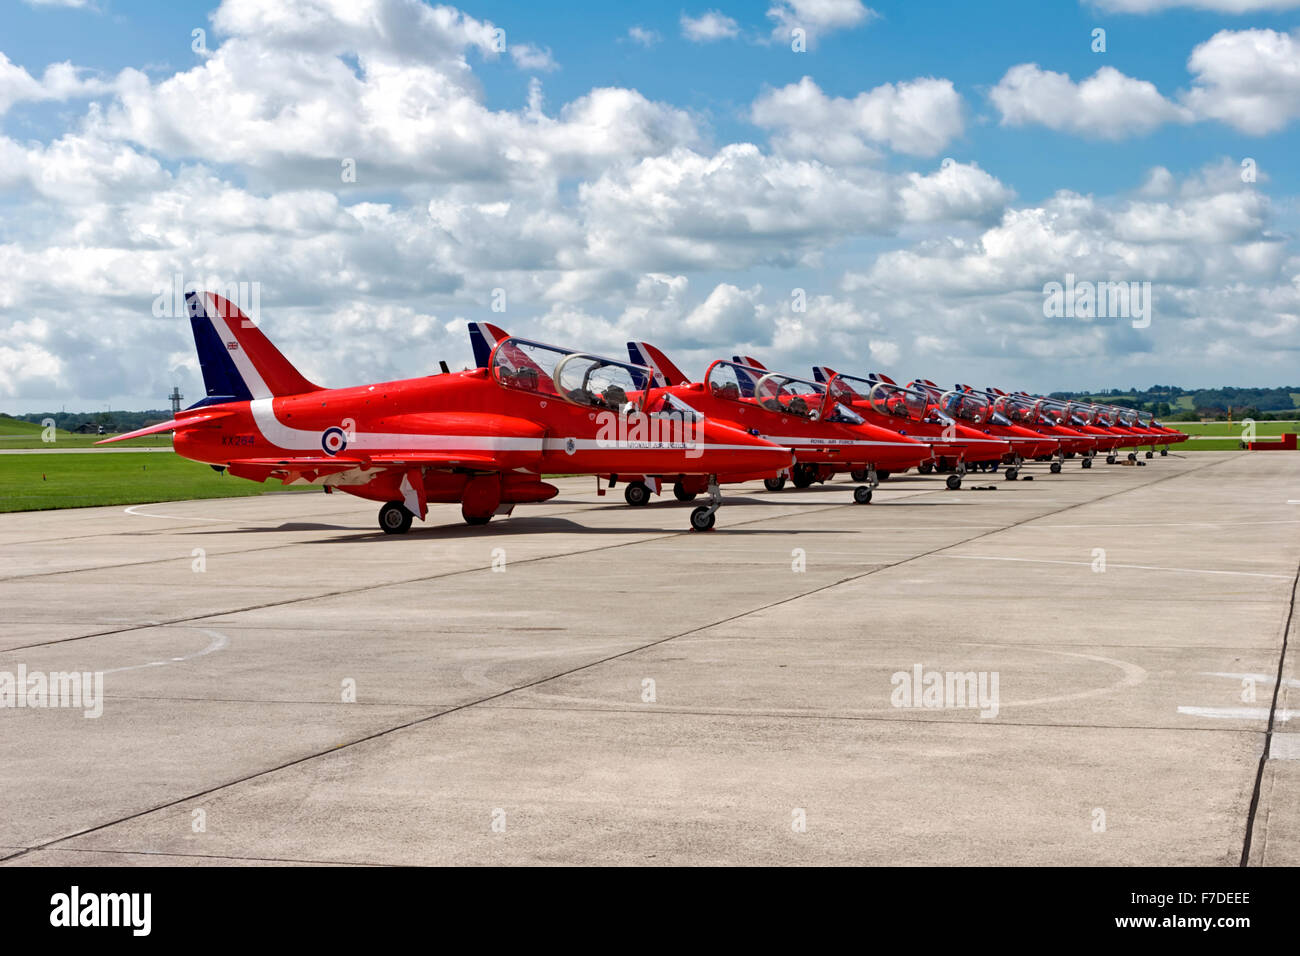 The Royal Air Force Red Arrows Aerobatic Display Team. - Stock Image